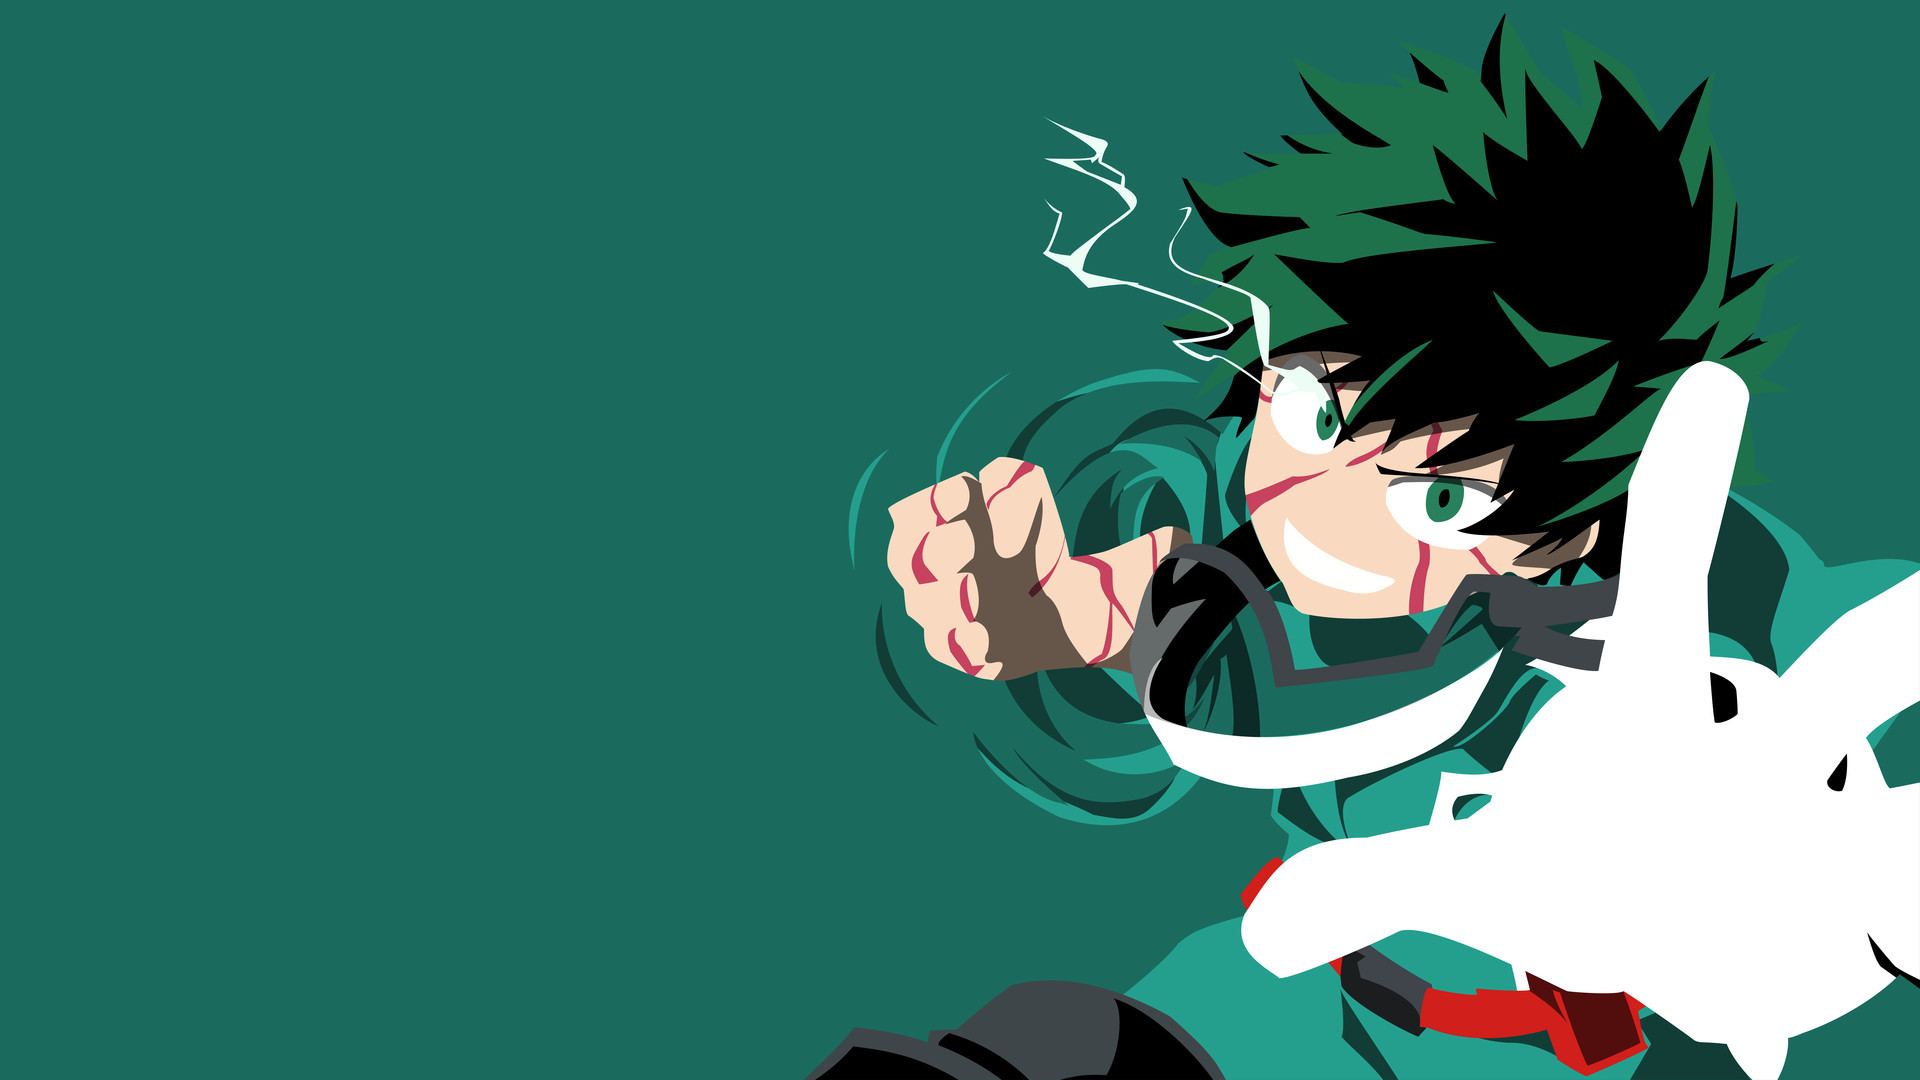 Boku No Hero Wallpapers 68 Background Pictures